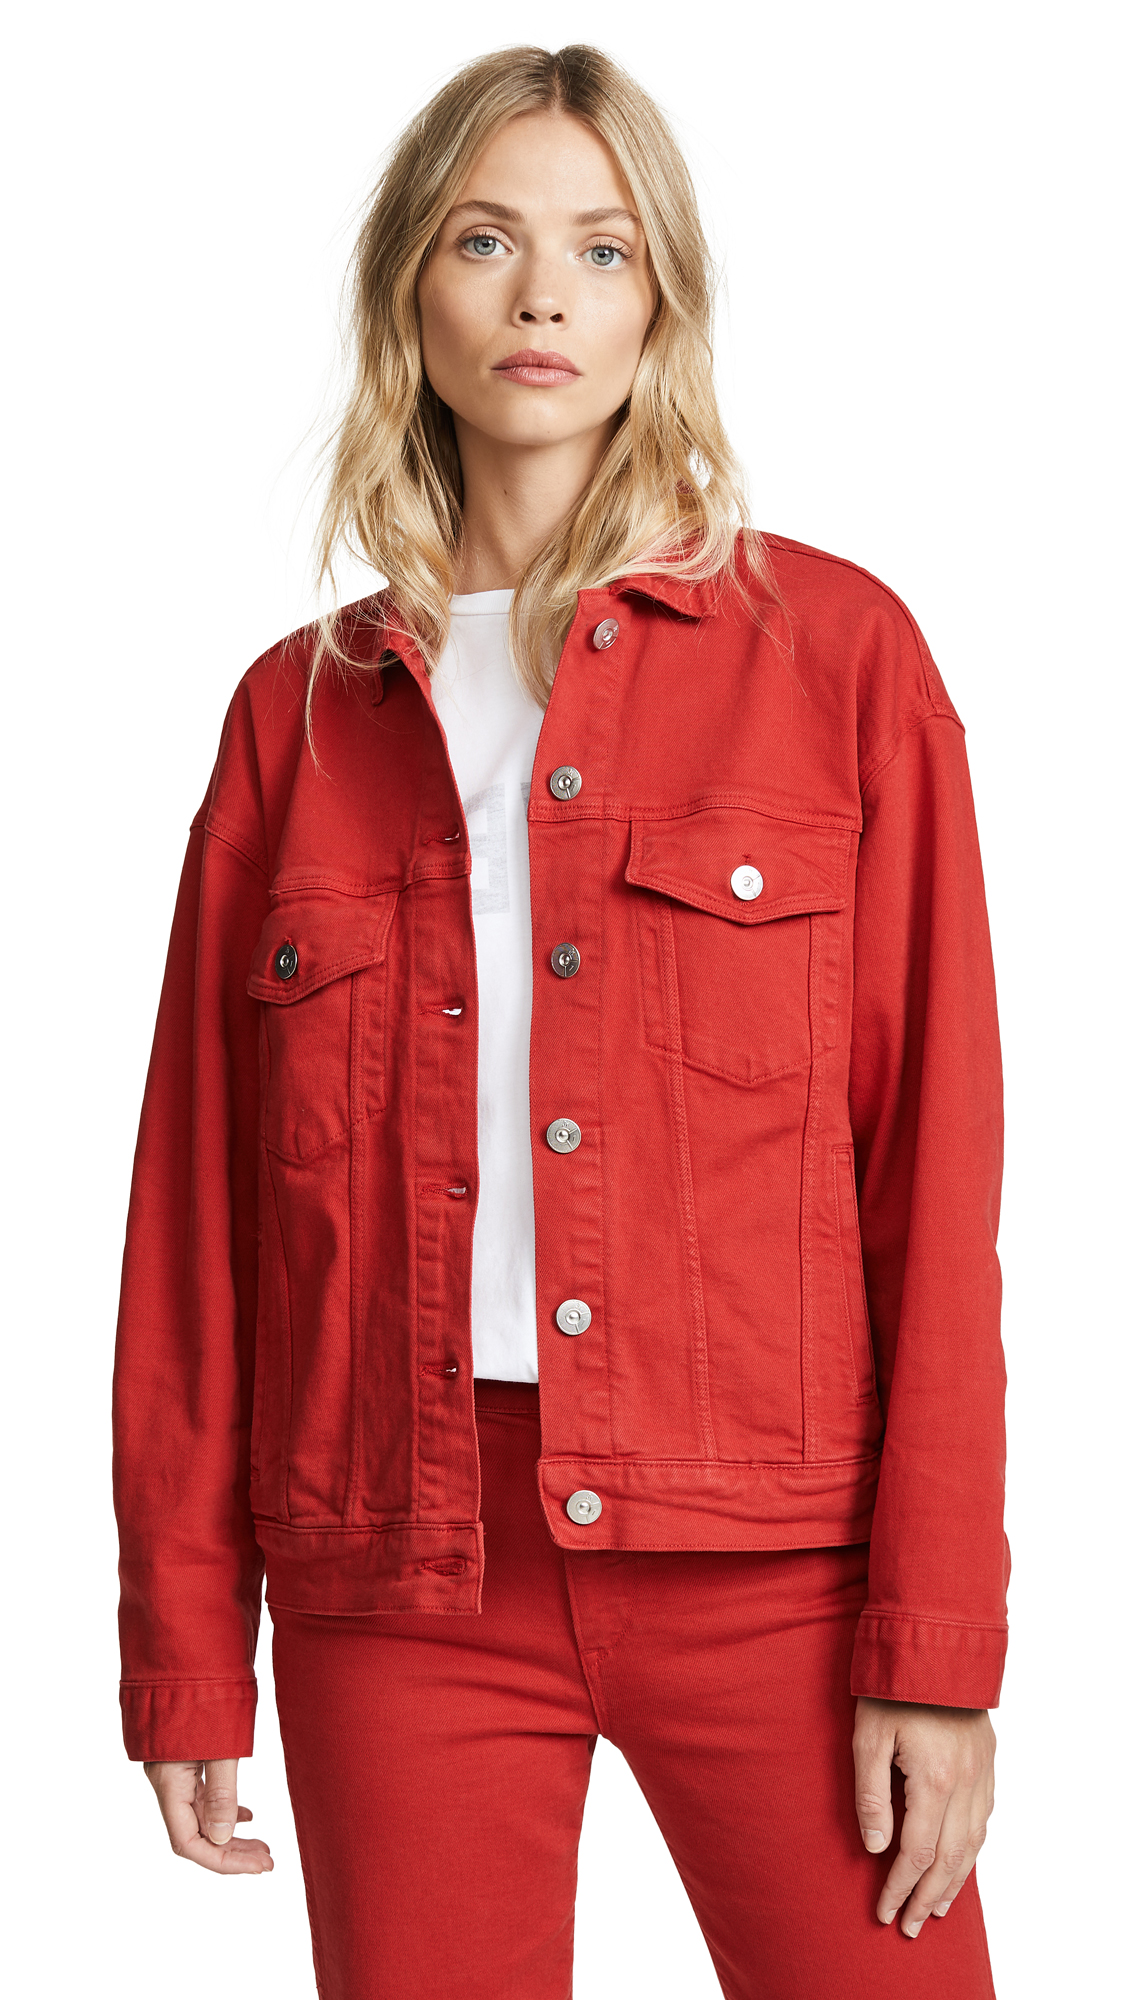 3x1 Oversized Classic Jacket In Apple Red